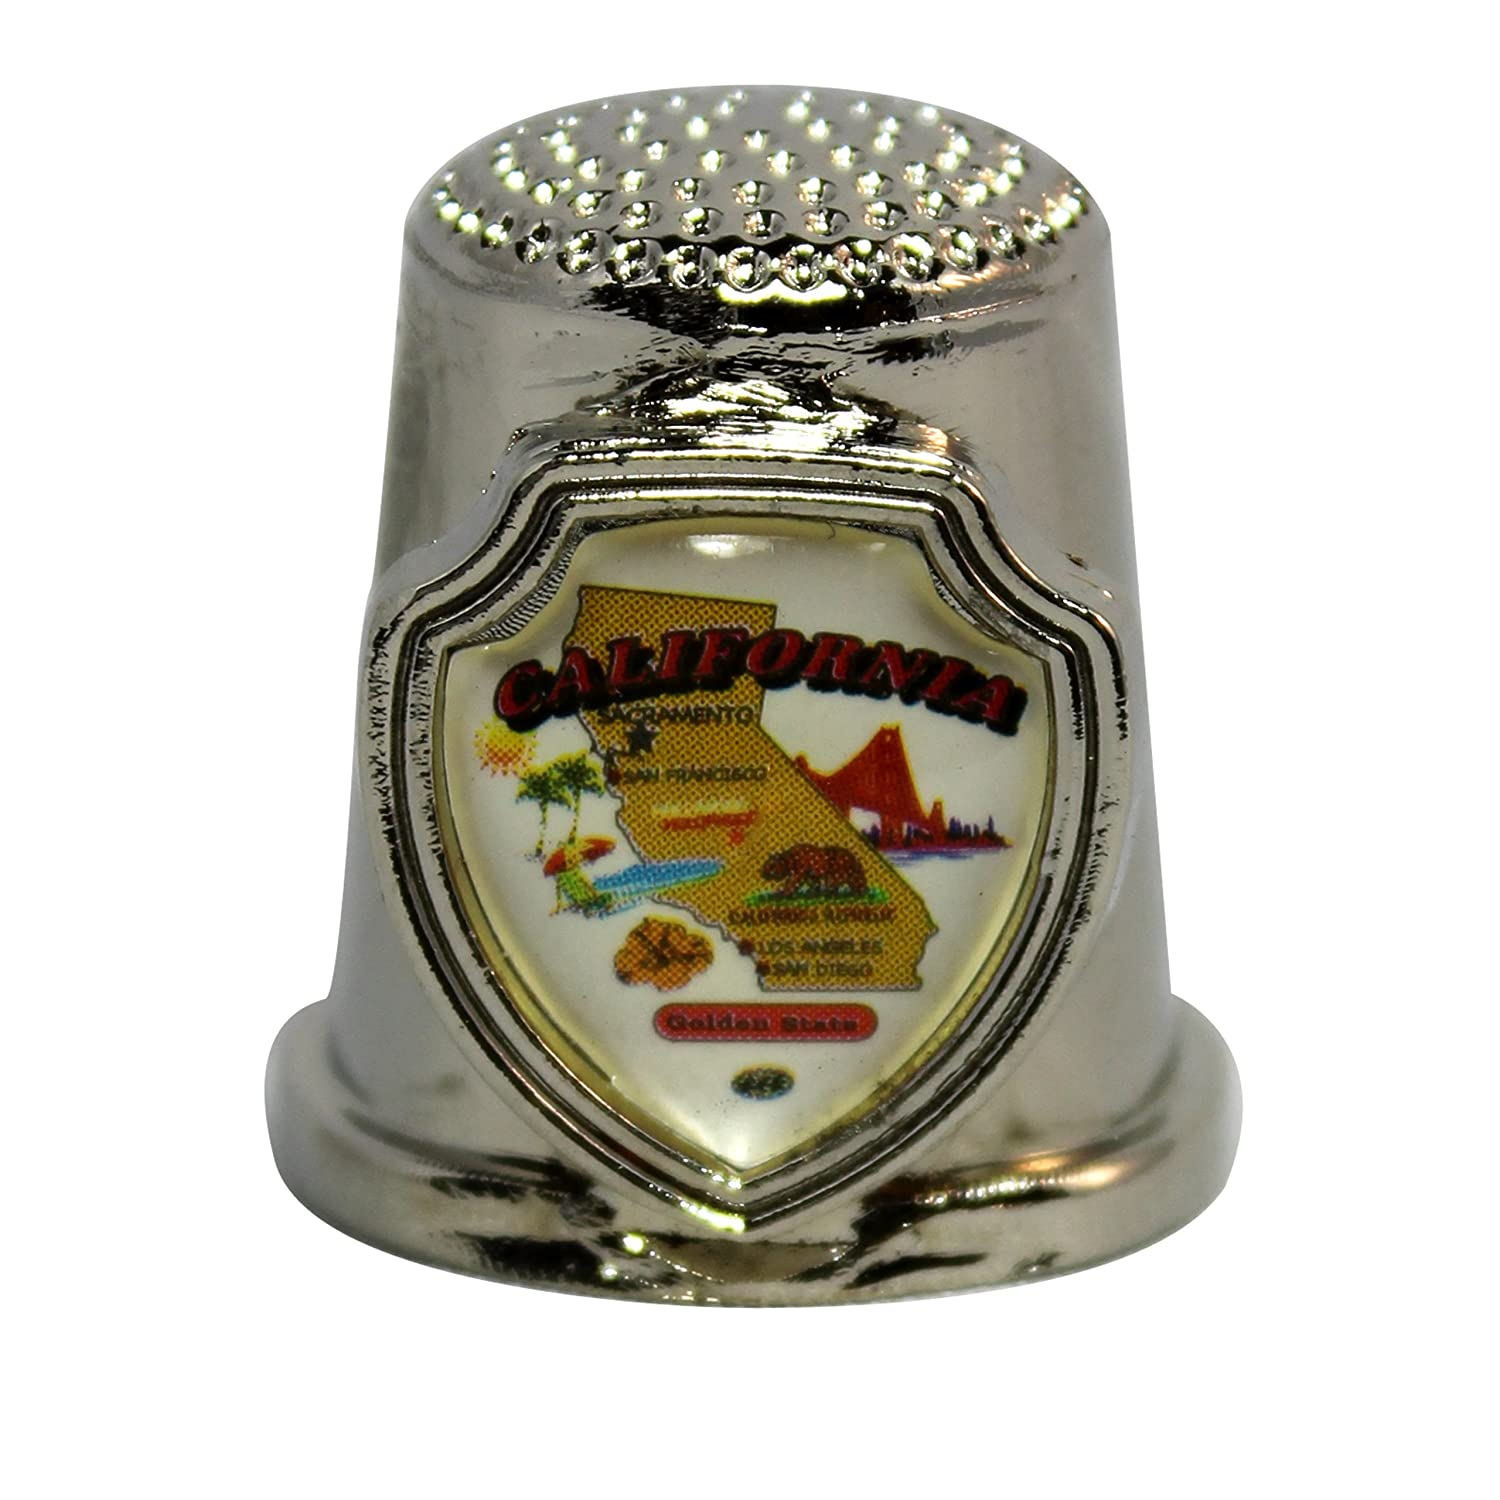 Souvenir Thimble - California - CA 646